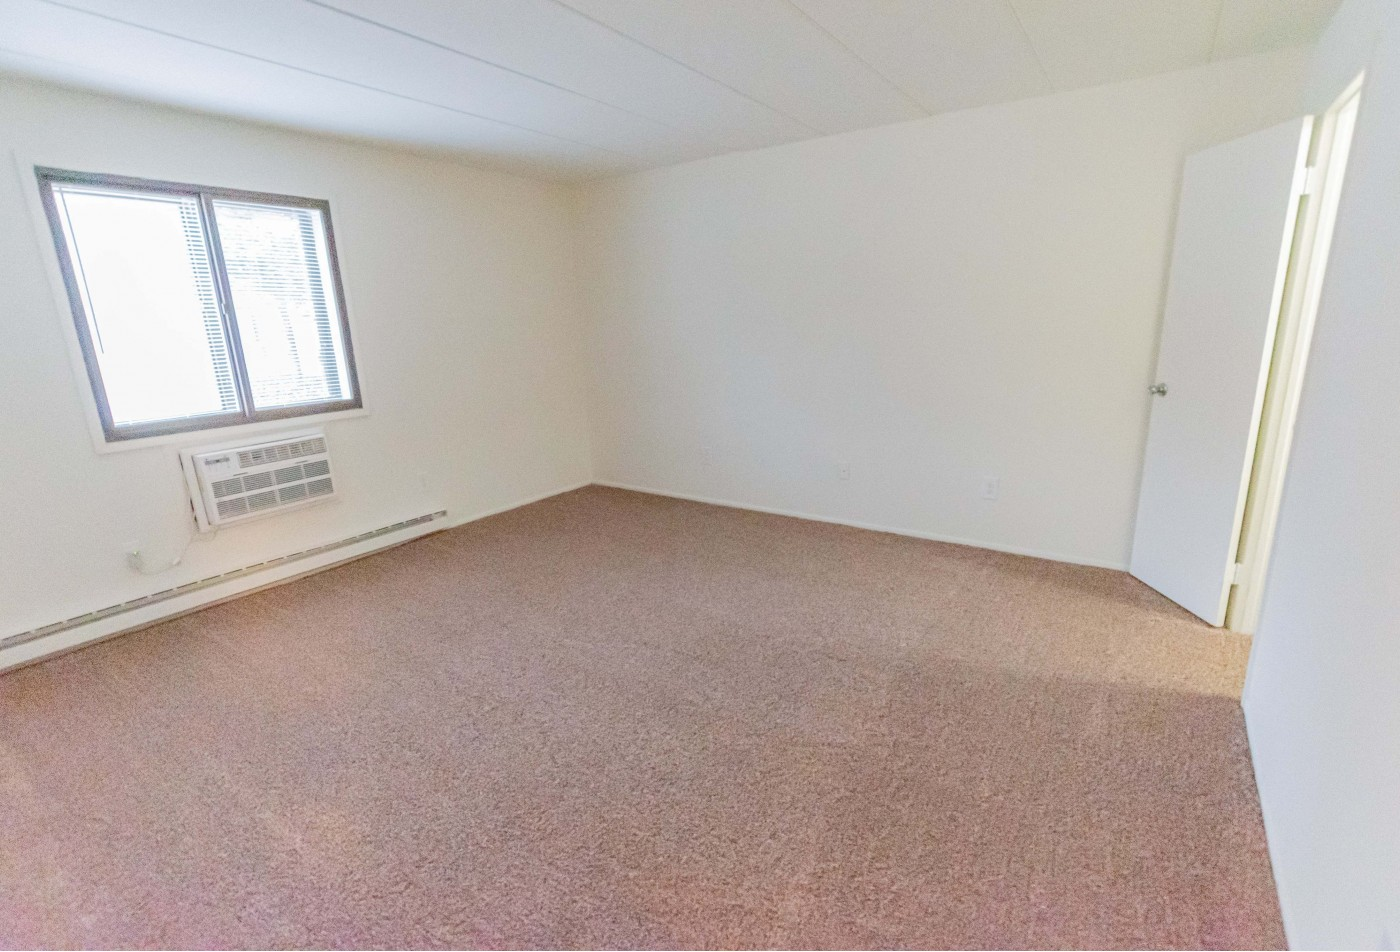 Apartments for rent in Exton, PA | Whiteland West Apartments